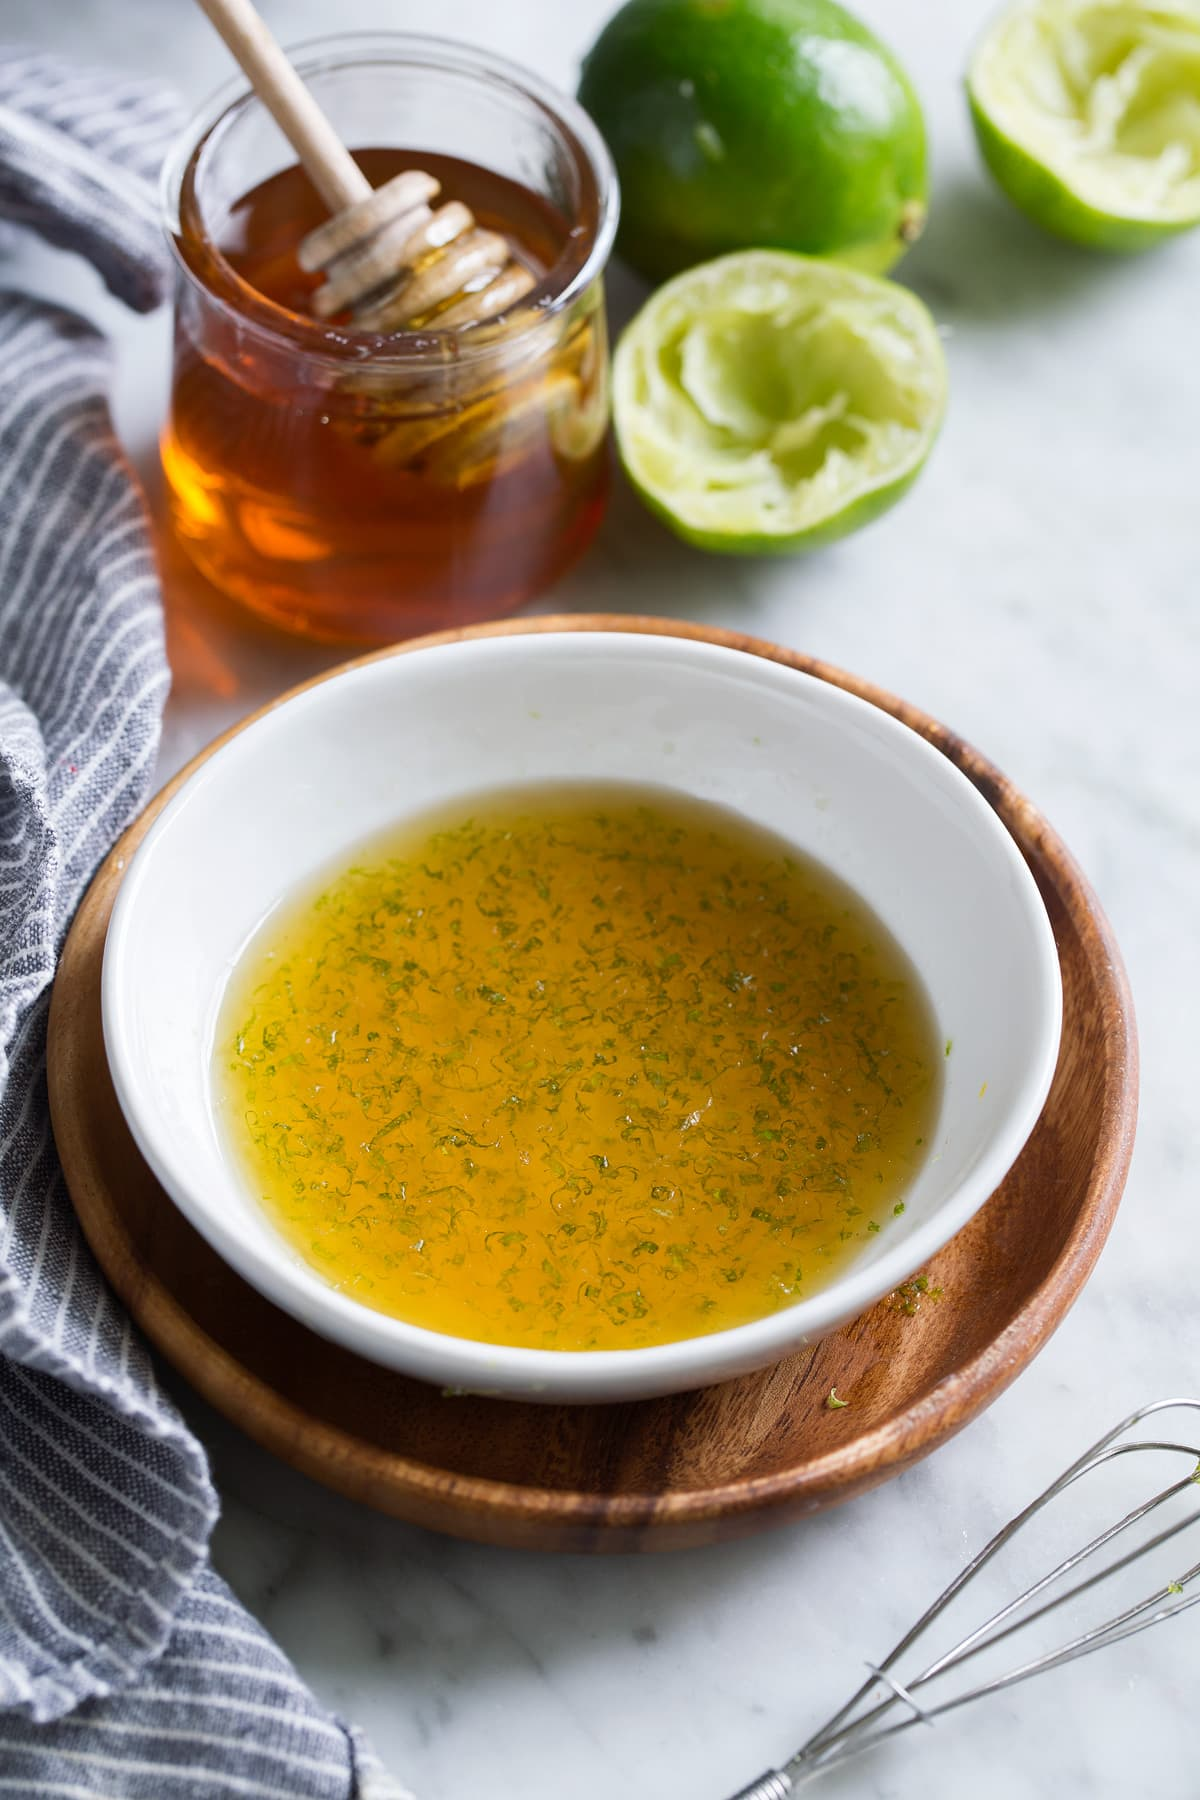 Honey lime fruit salad dressing in a small white bowl set over a wooden plate.